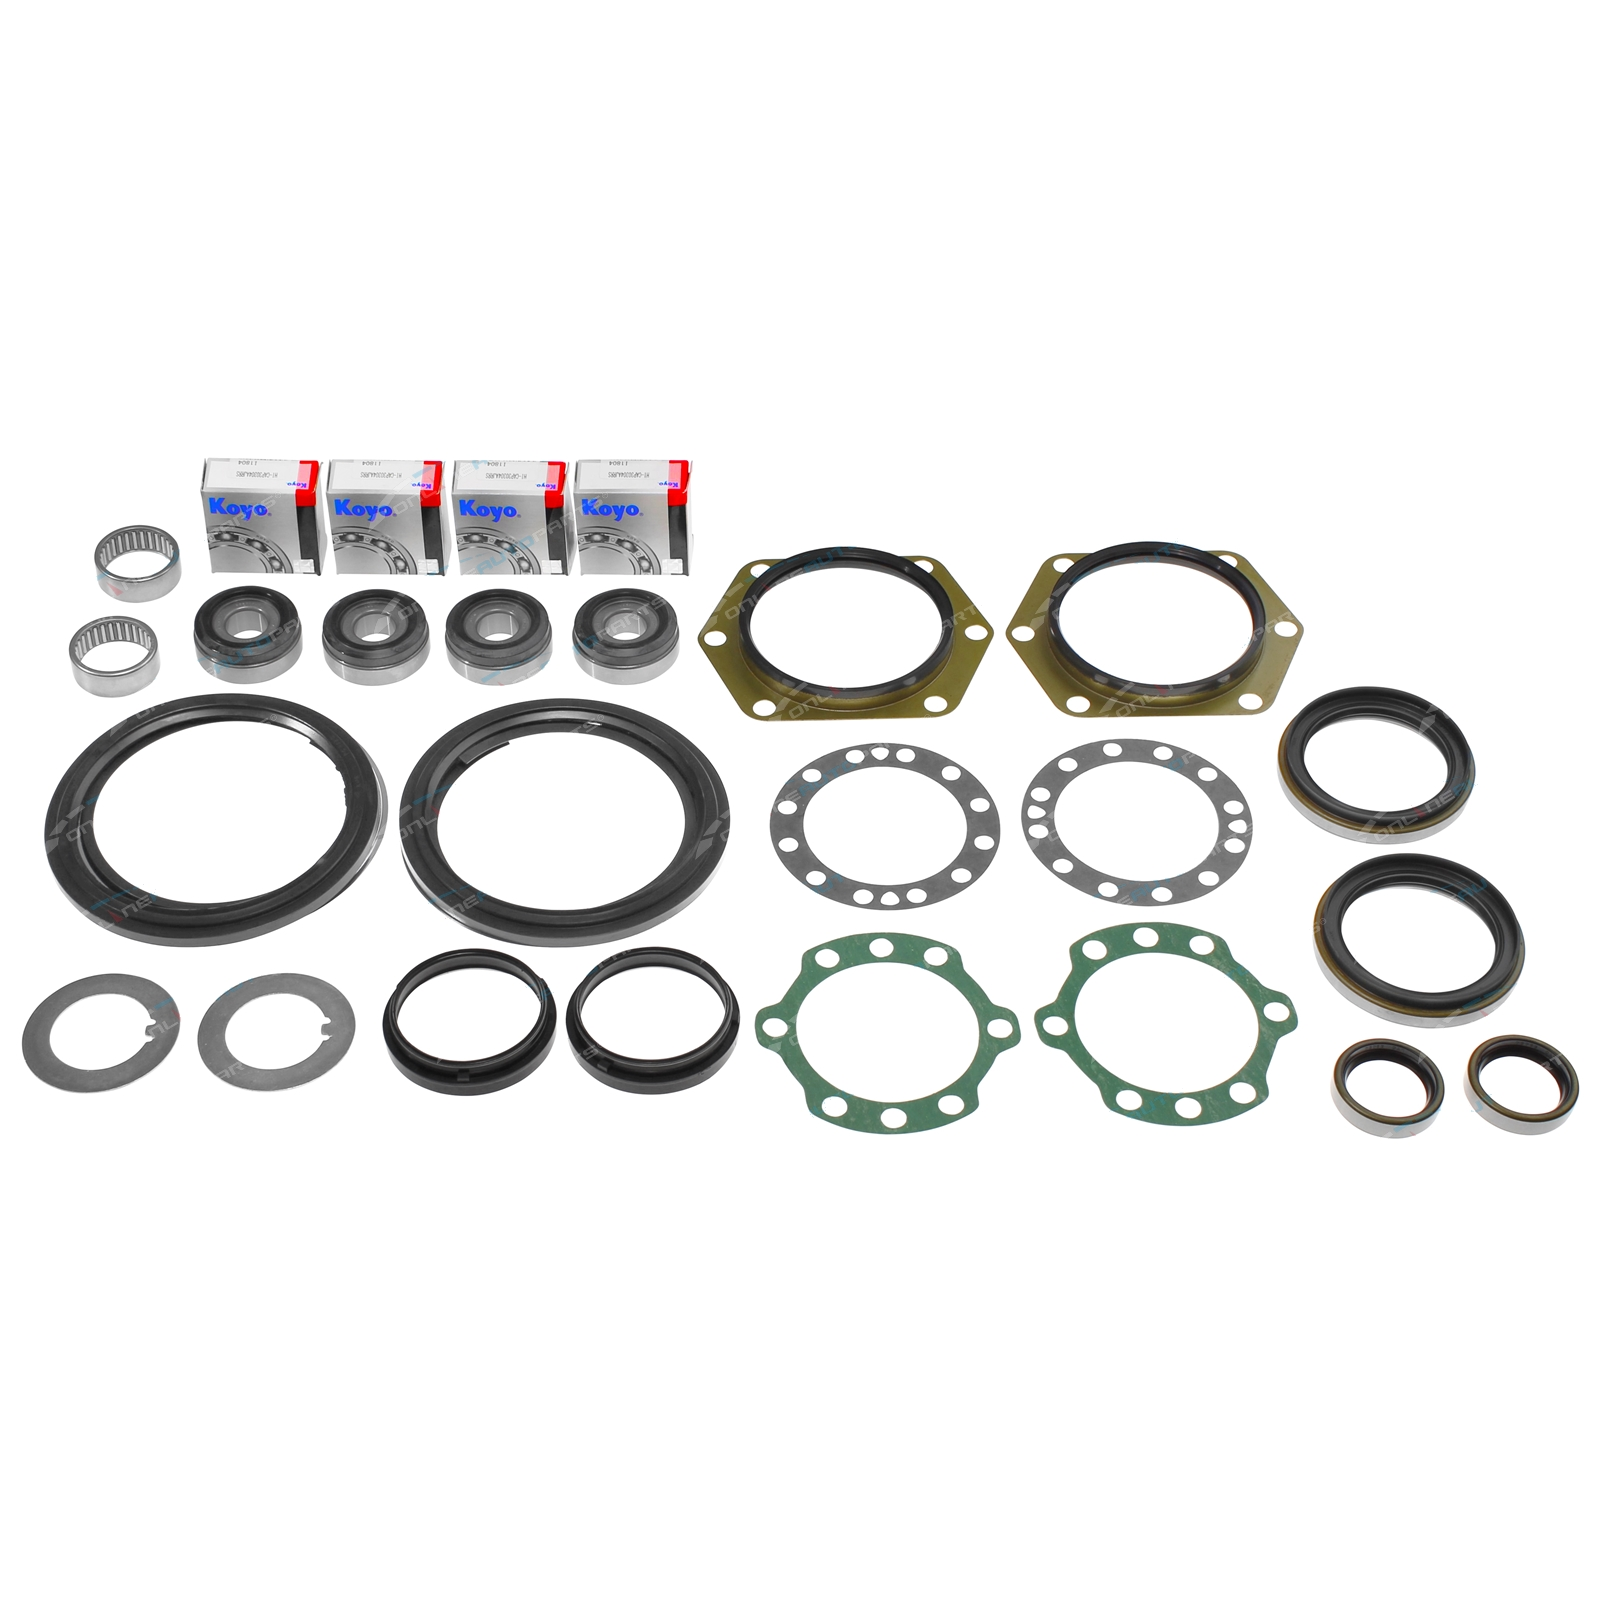 Swivel Hub Knuckle Bearing King Pin + Seal Kit fits Nissan